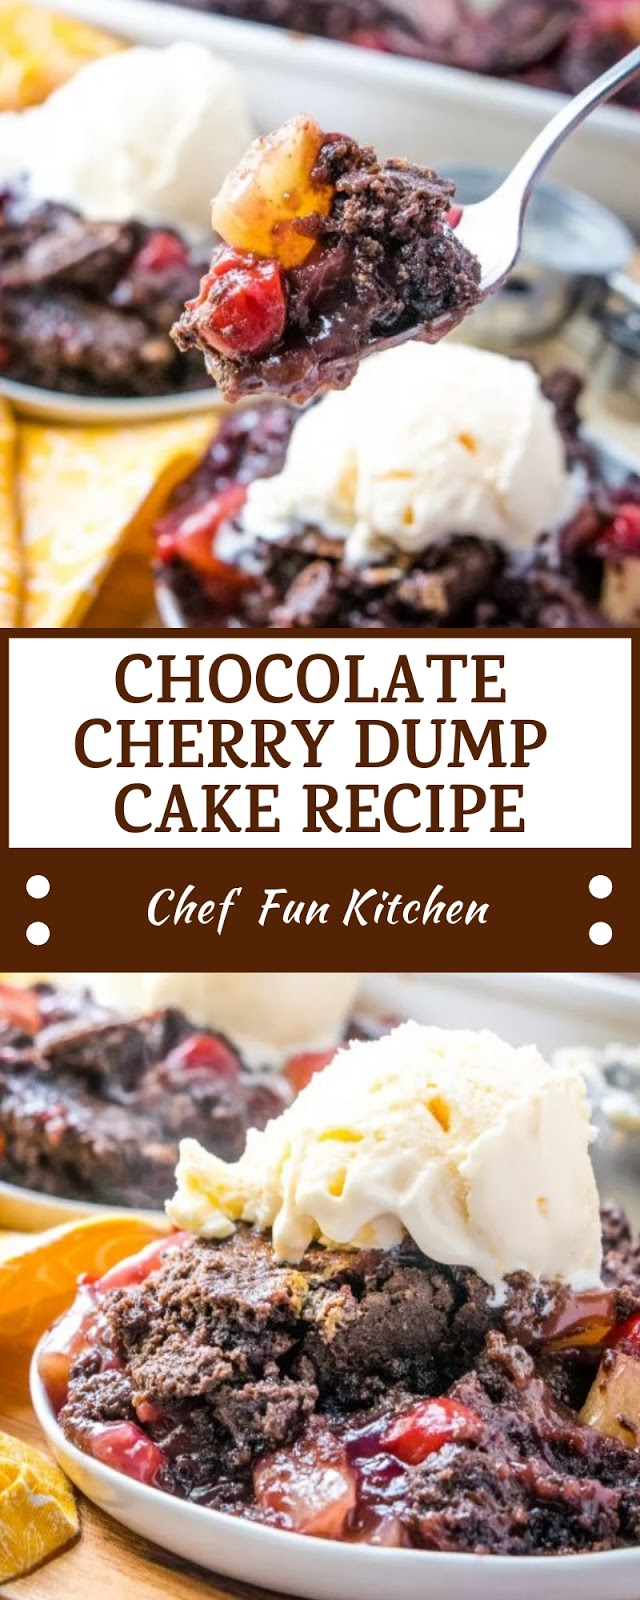 CHOCOLATE CHERRY DUMP CAKE RECIPE